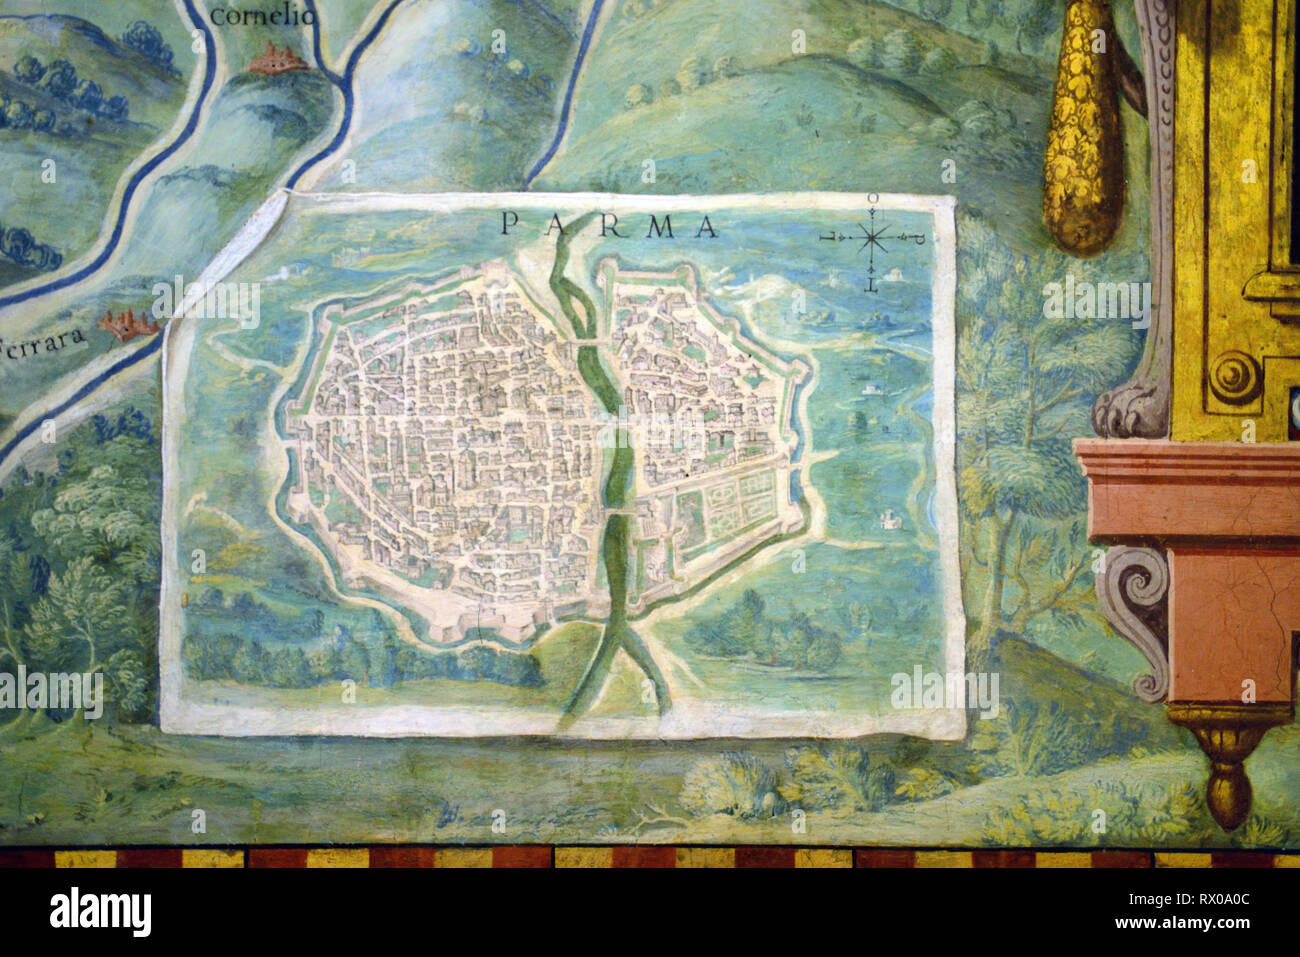 Town Plan or Old Map of Parma, Italy. Fresco or Wall Painting in Gallery of Maps (1580-83) based on Drawings by Ignazio Danti Vatican Museums - Stock Image